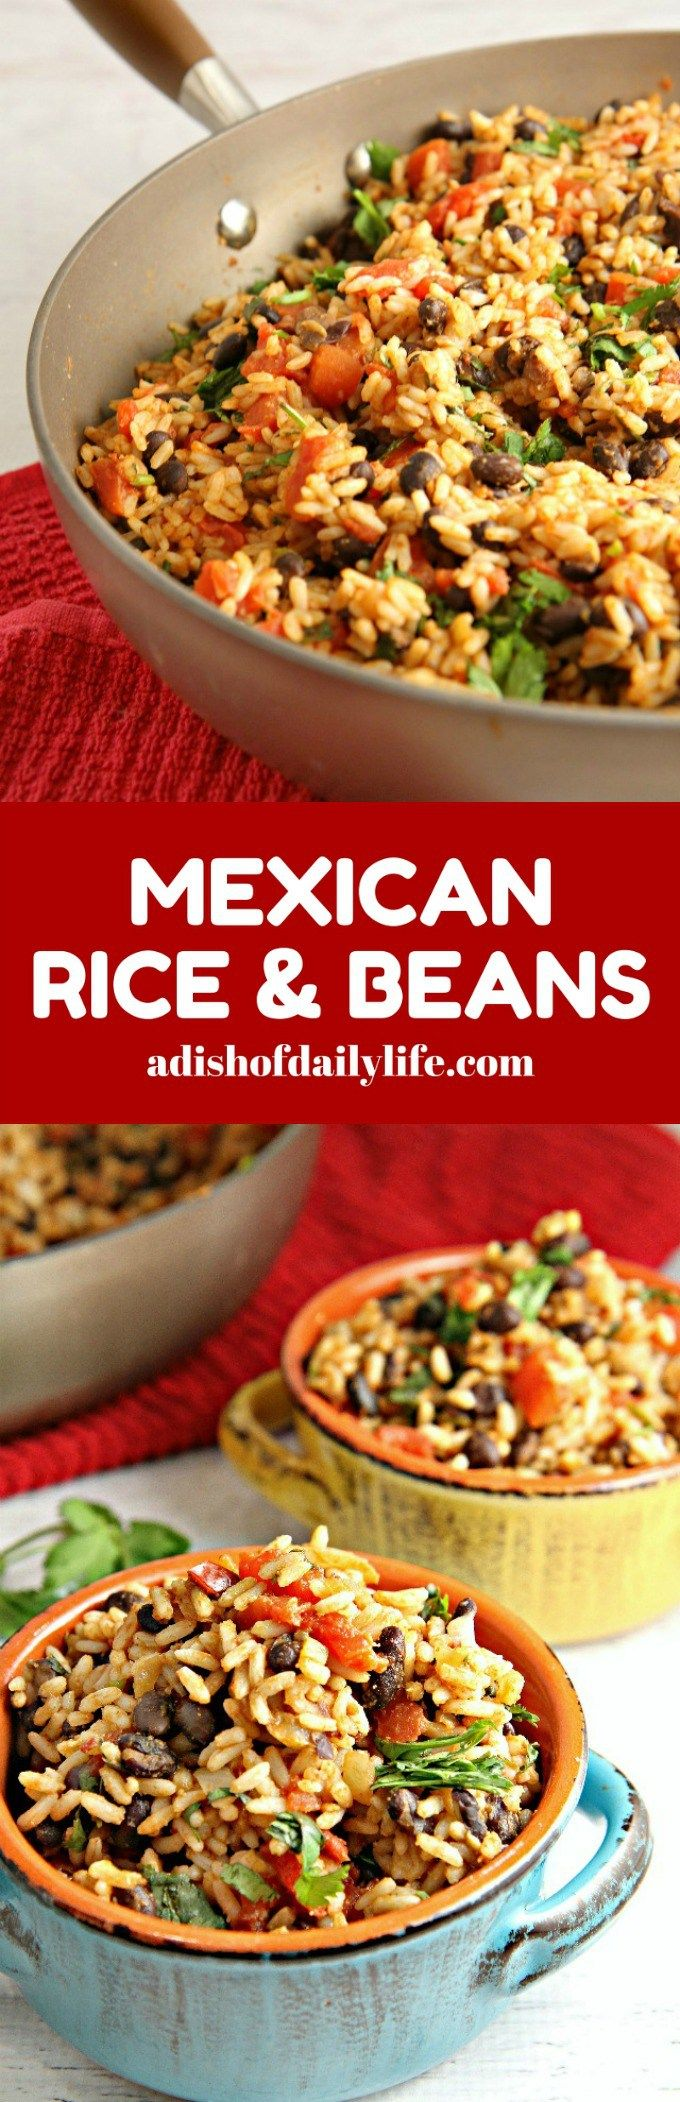 Mexican Rice and Beans...an easy versatile vegetarian dish! Use it as a side dish for Mexican night, use the leftovers as a filling for burritos along with chicken or beef, or add cheese and turn it into a Mexican bake.